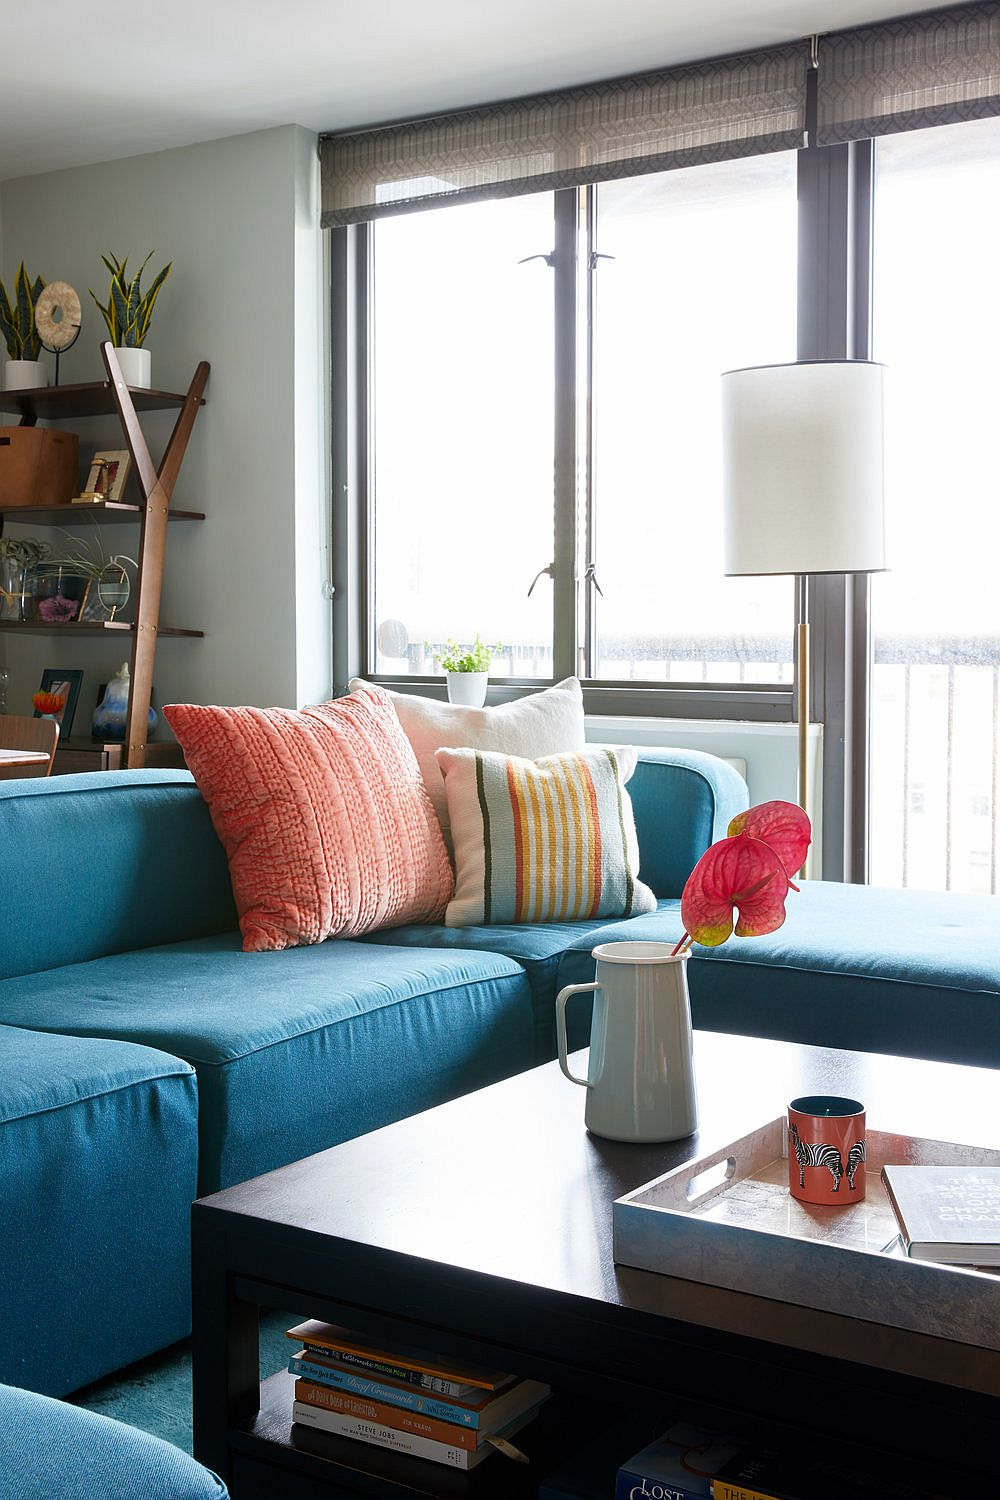 Use smart accent pillows along with a brightly colored couch for a more colorful contemporary living space